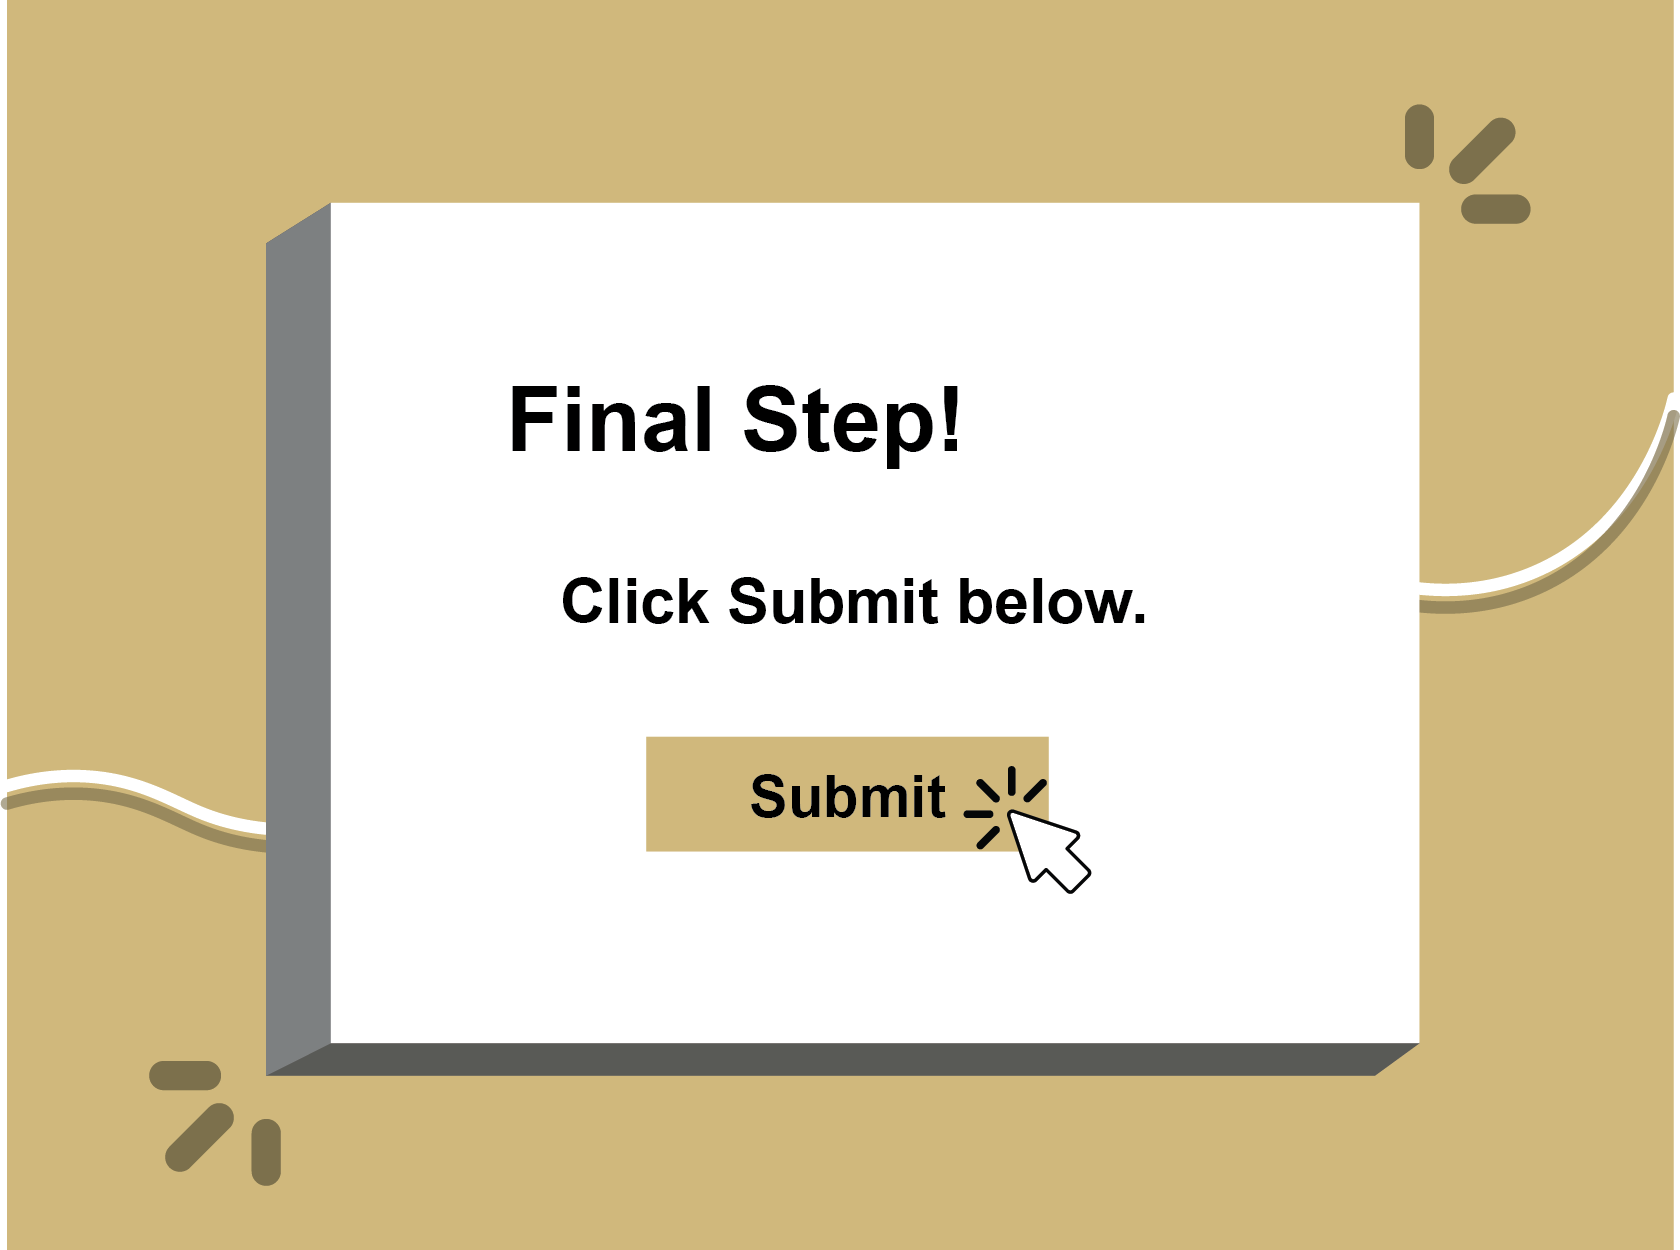 Final step click and submit below